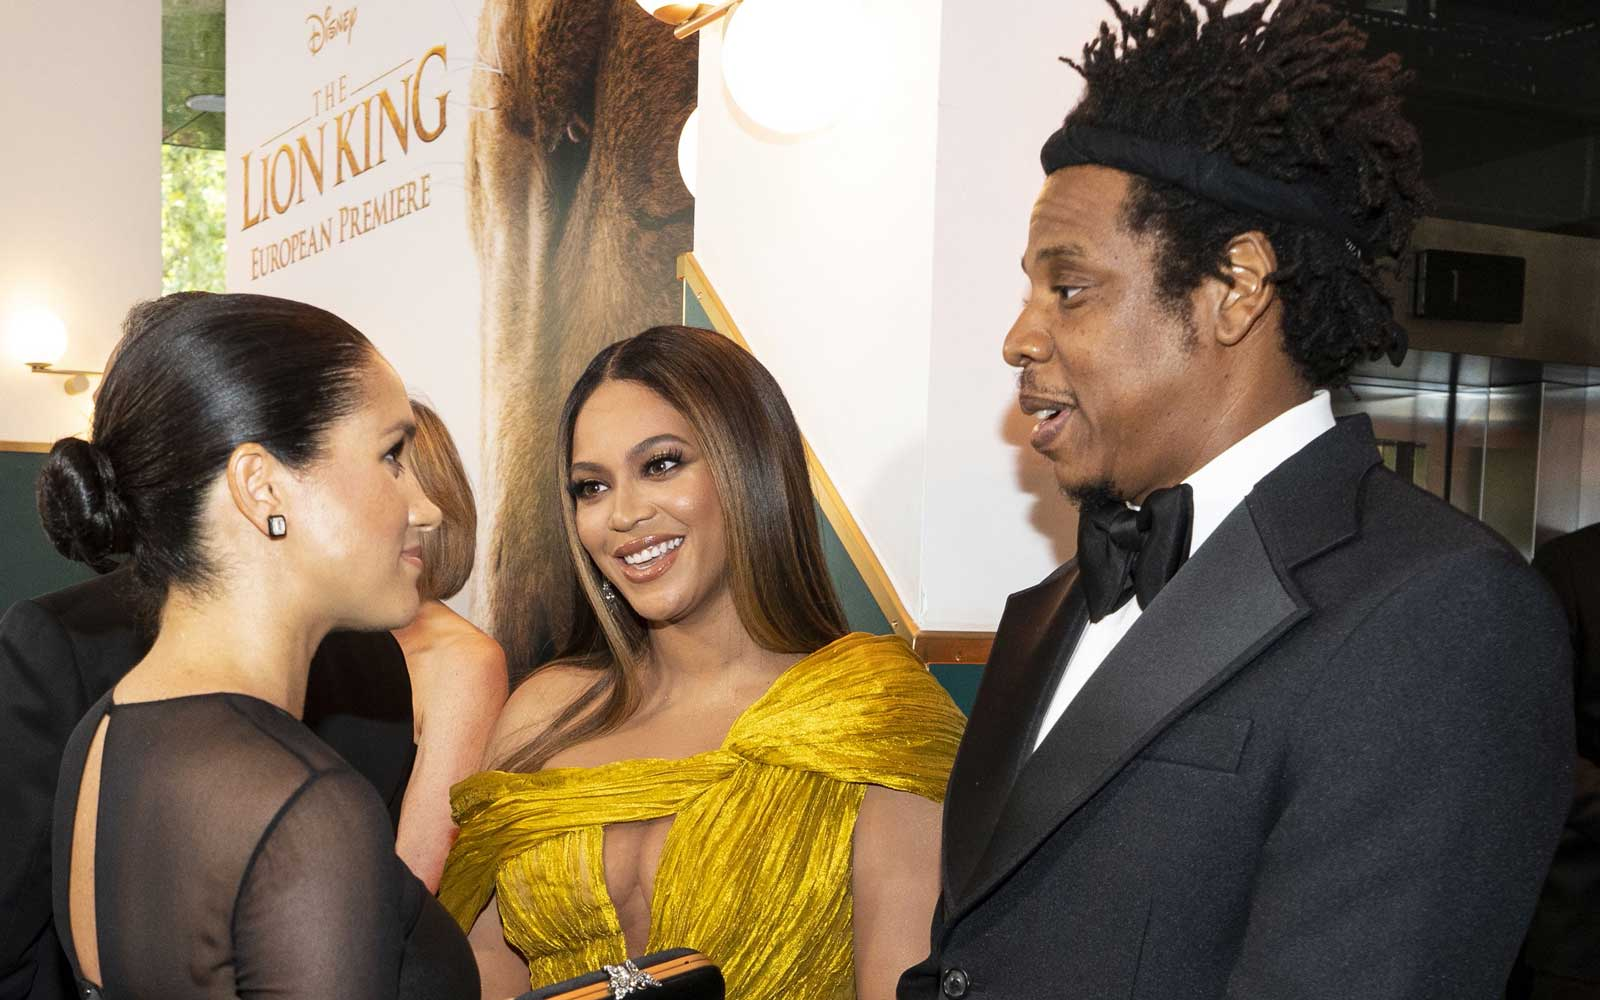 Meghan, Duchess of Sussex (L) meets cast and crew, including US singer-songwriter Beyoncé (C) and her husband, US rapper Jay-Z (R) as she attends the European premiere of the film The Lion King in London on July 14, 2019